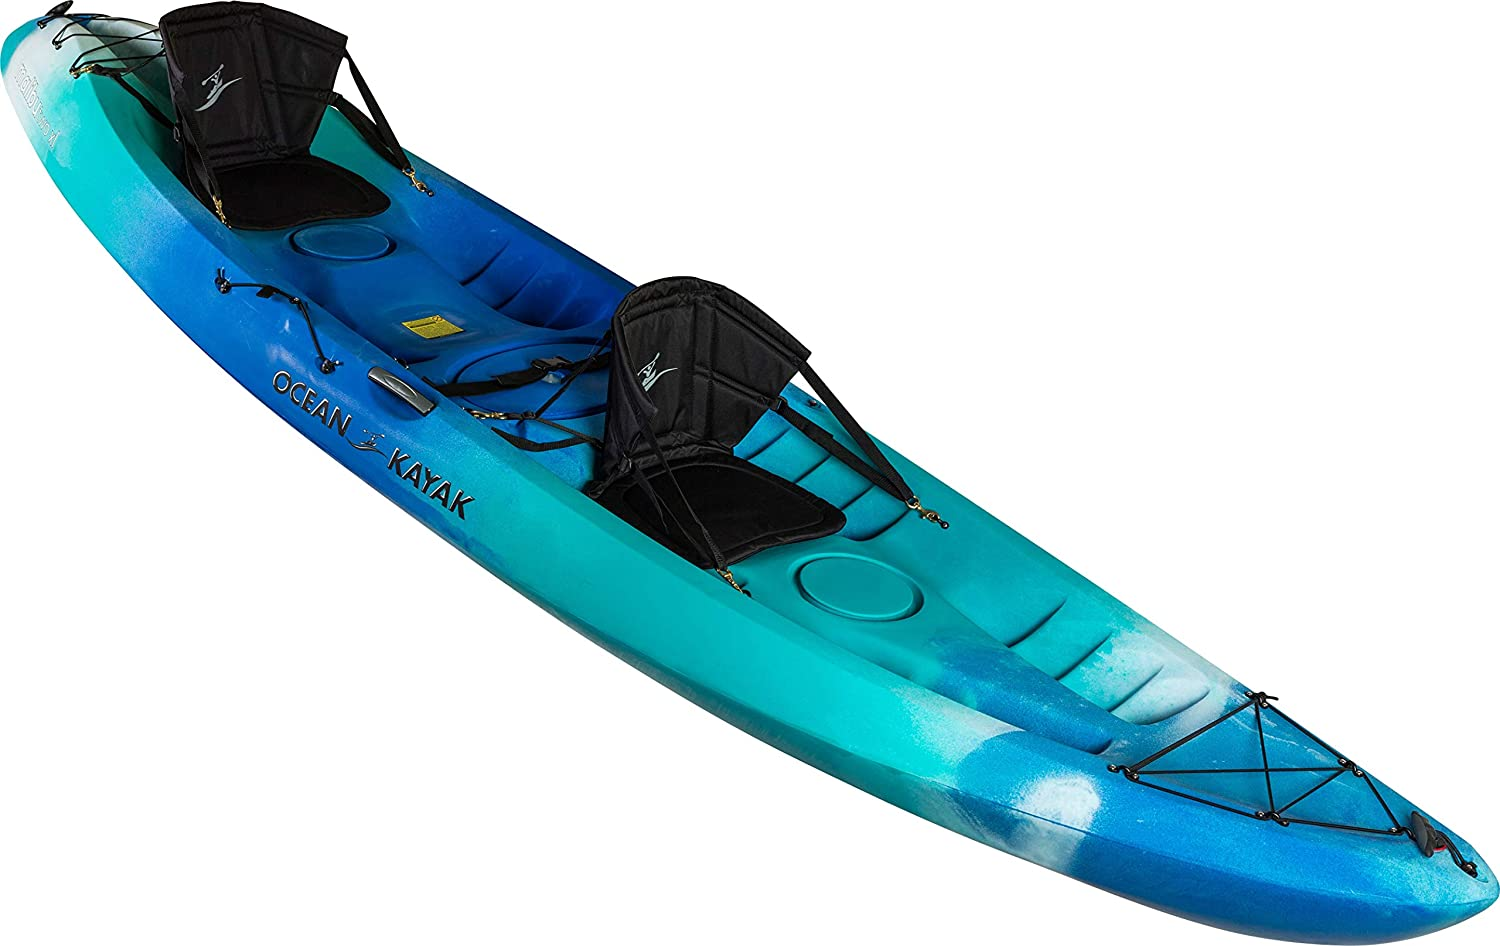 Malibu Two XL Ocean Tandem Kayak